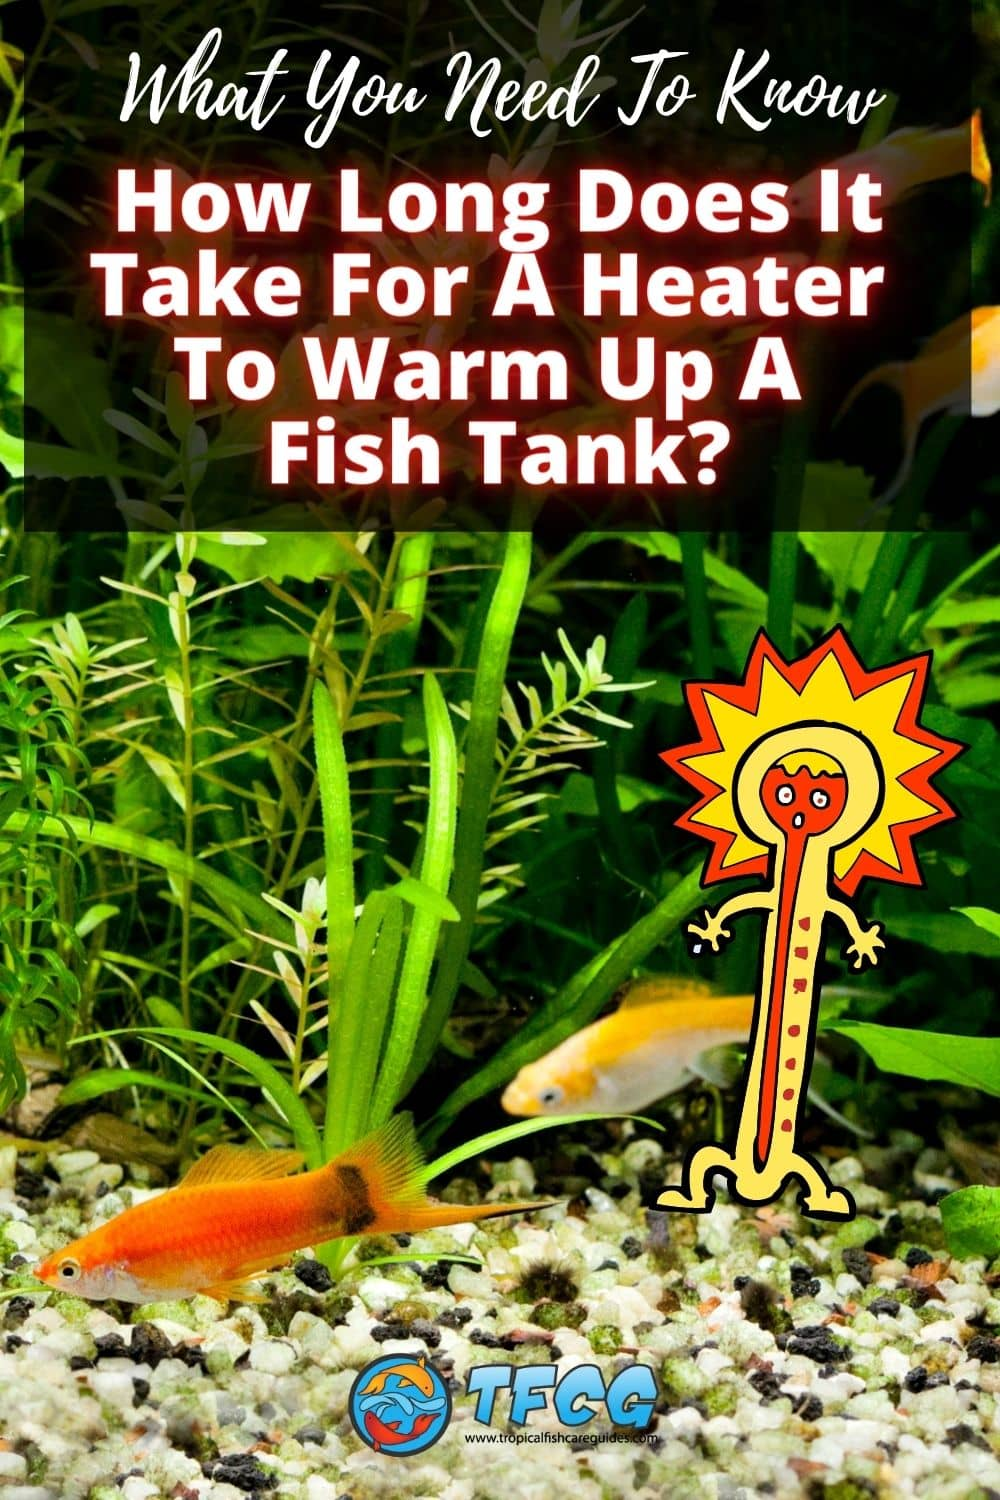 How Long Does It Take For A Heater To Warm Up A Fish Tank